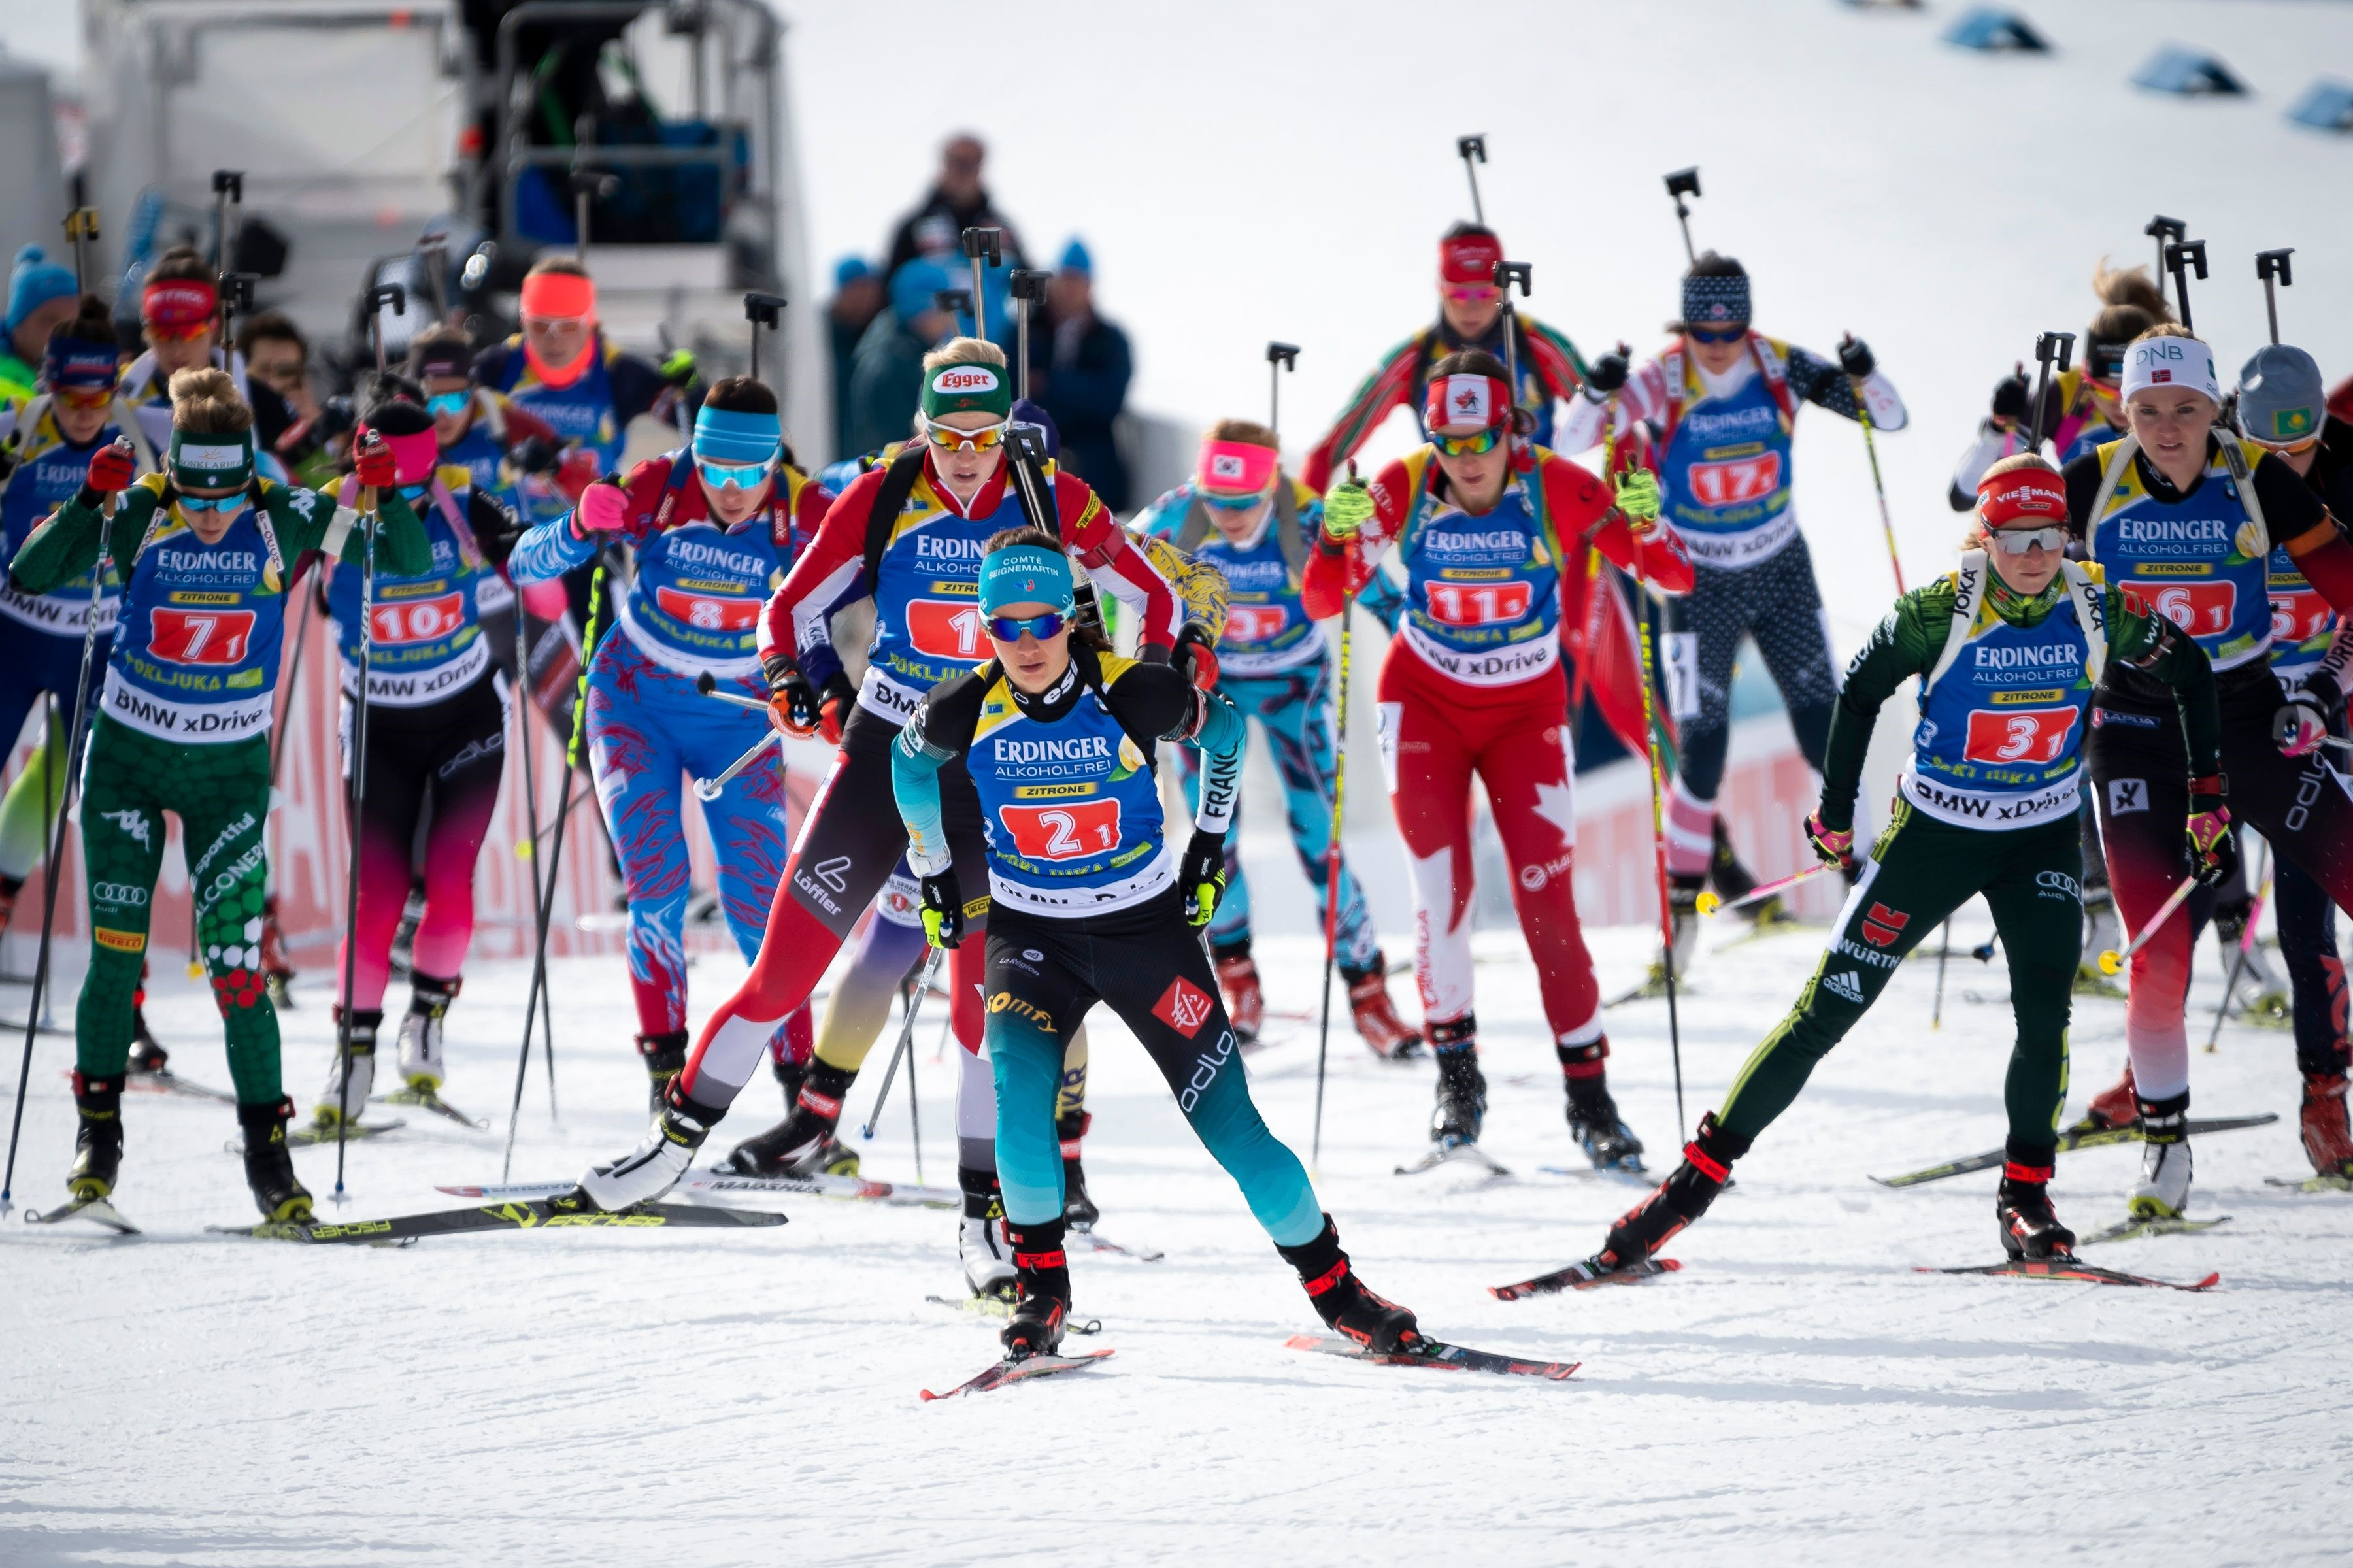 Biathlon, Staffel